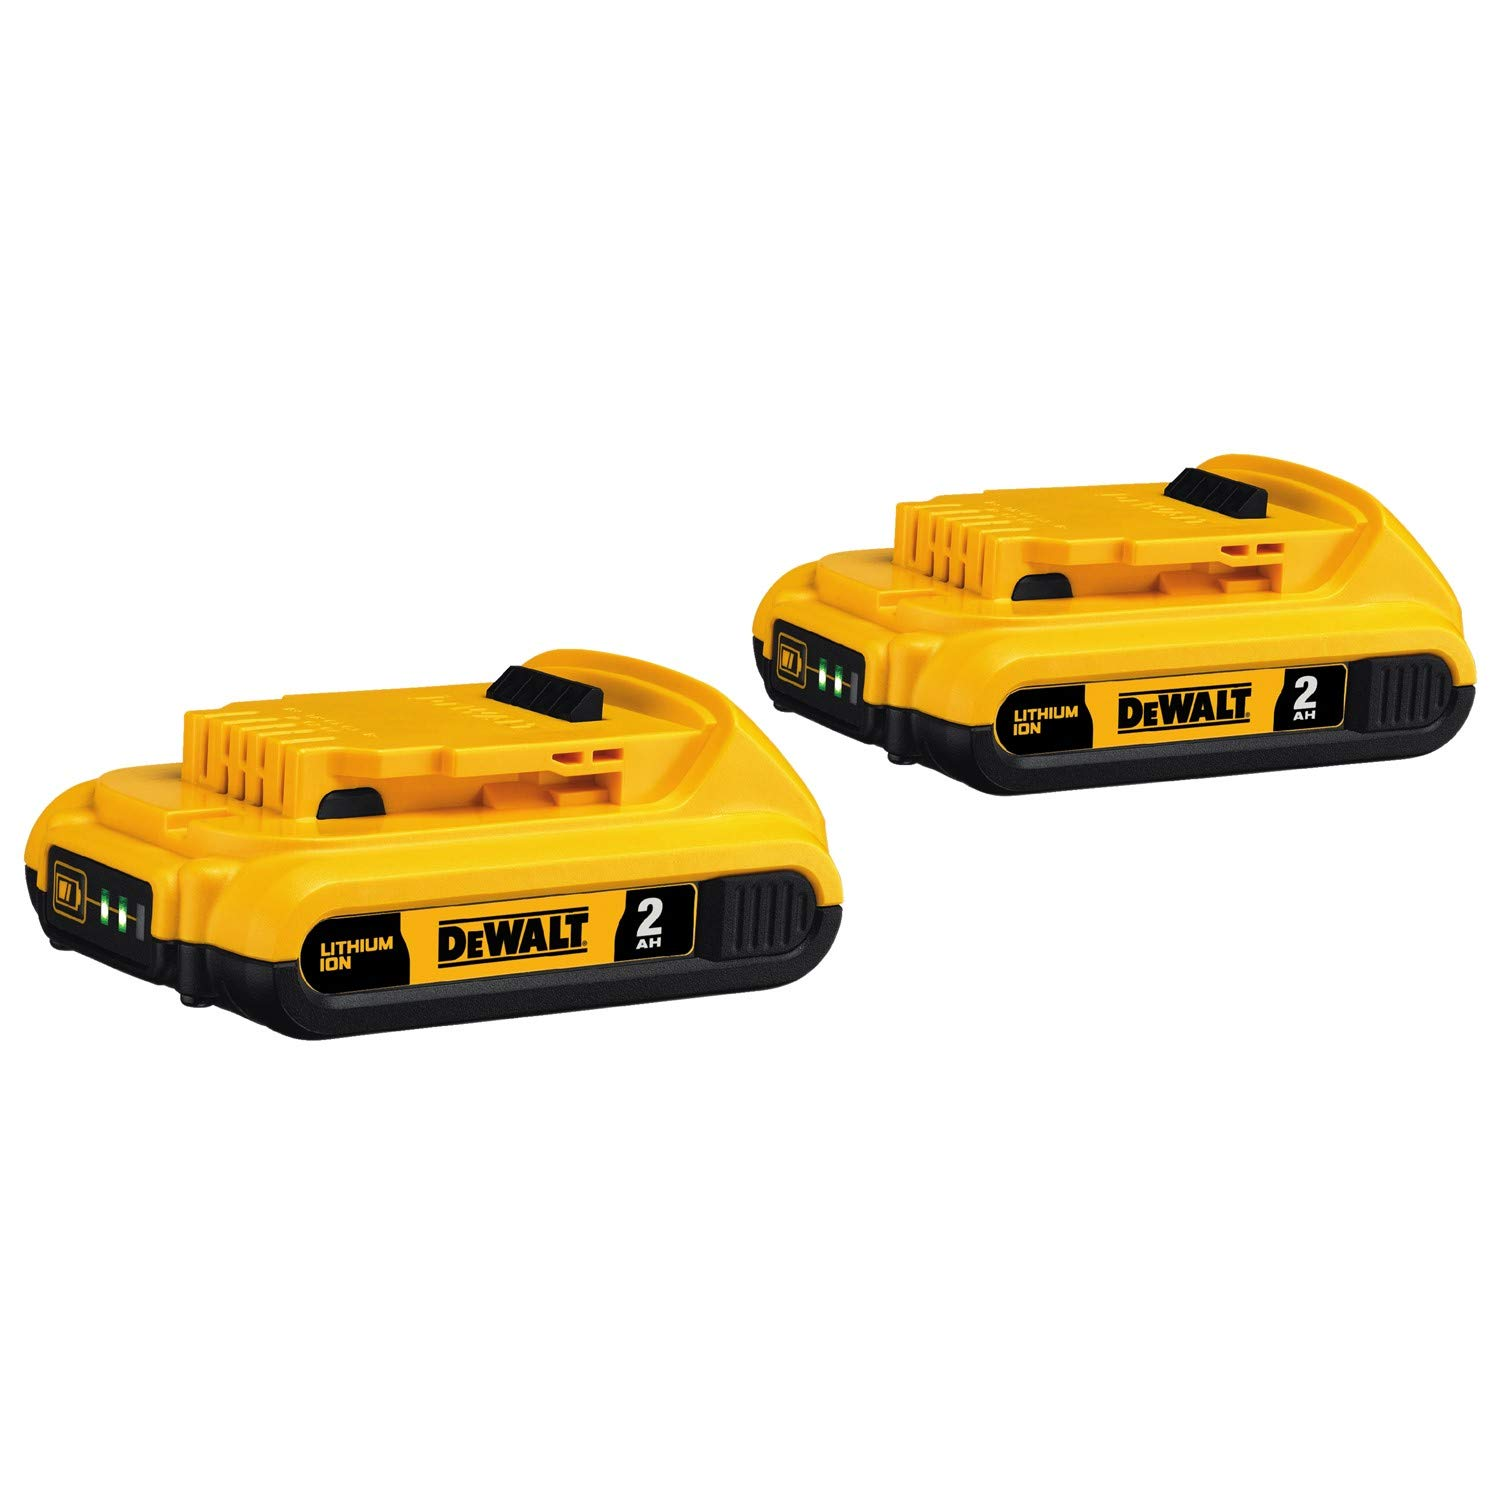 DEWALT 20V MAX Battery, Compact 2.0Ah Double Pack (DCB203-2), Yellow by DEWALT